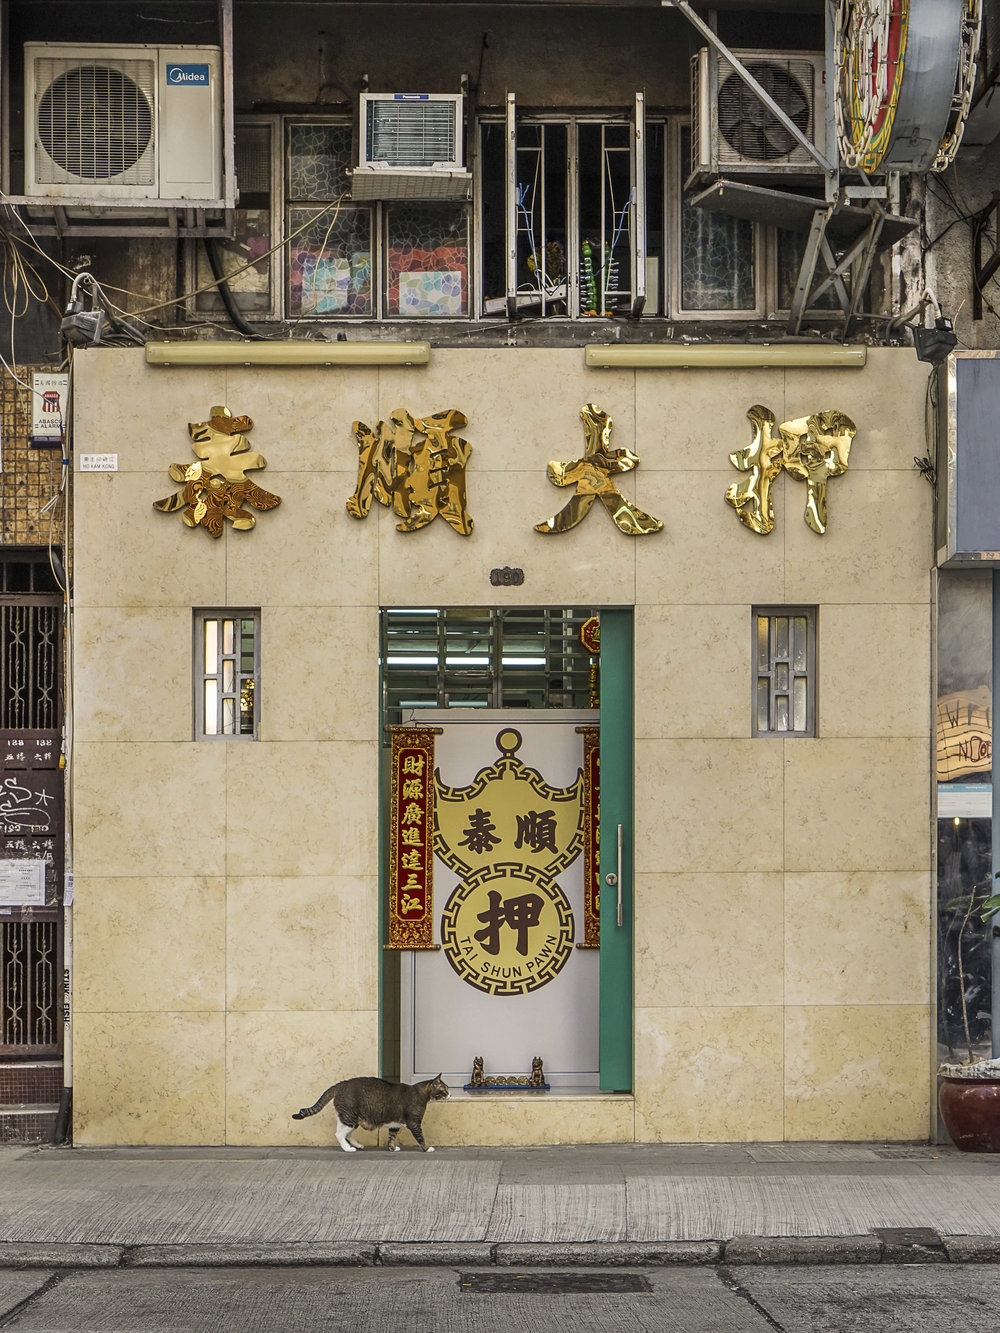 M. Heijnen, HK Shop Cats #60.jpg